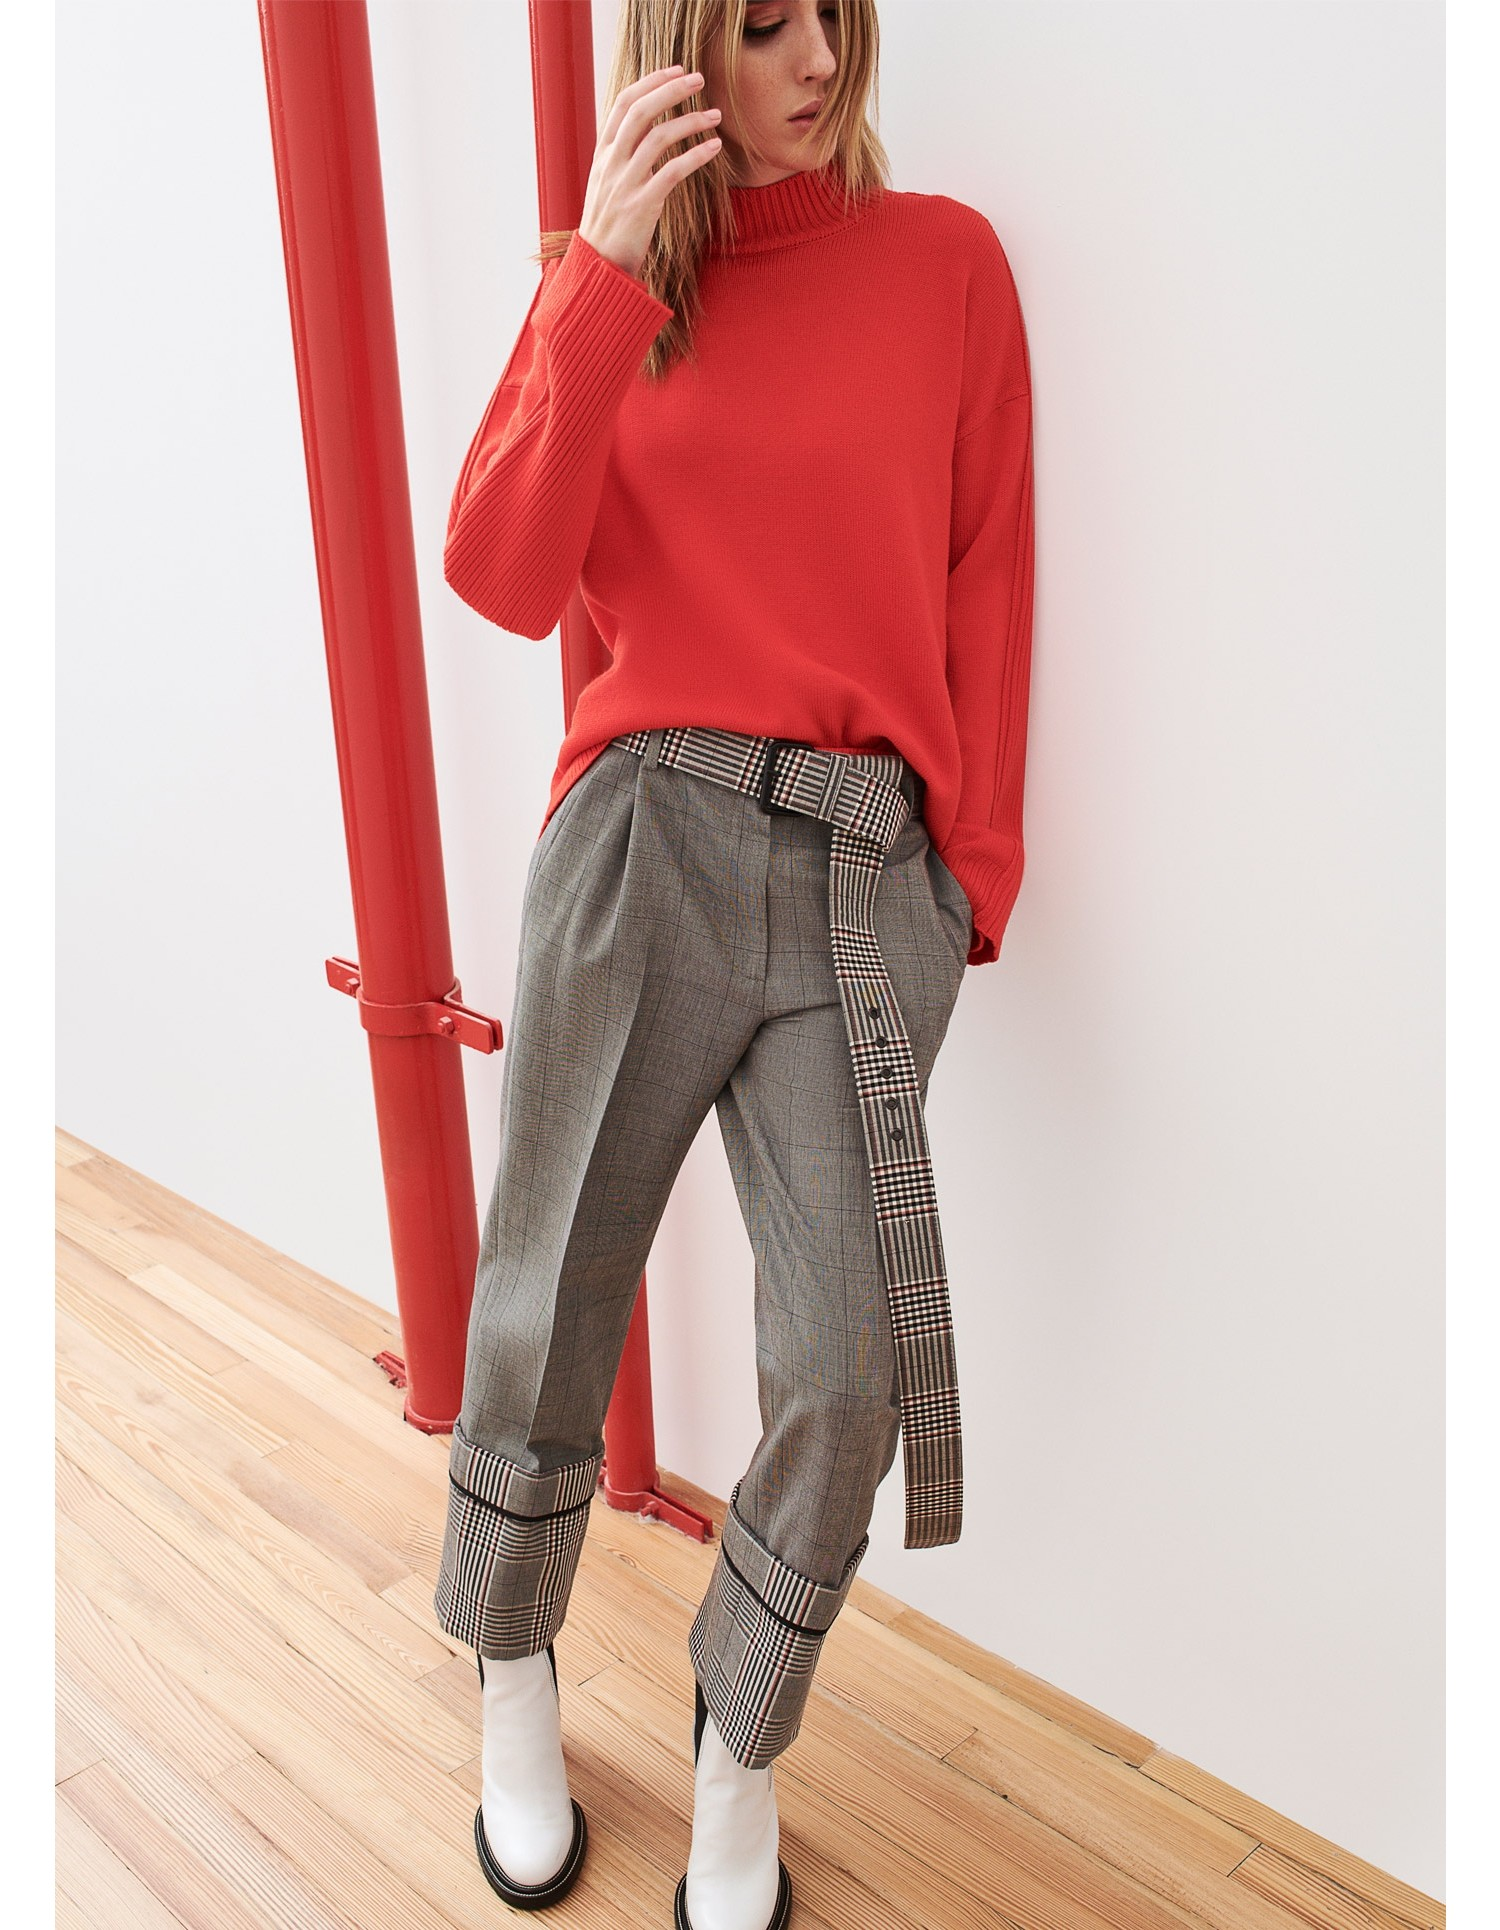 MONSE Oversized Cuff Trouser Model View